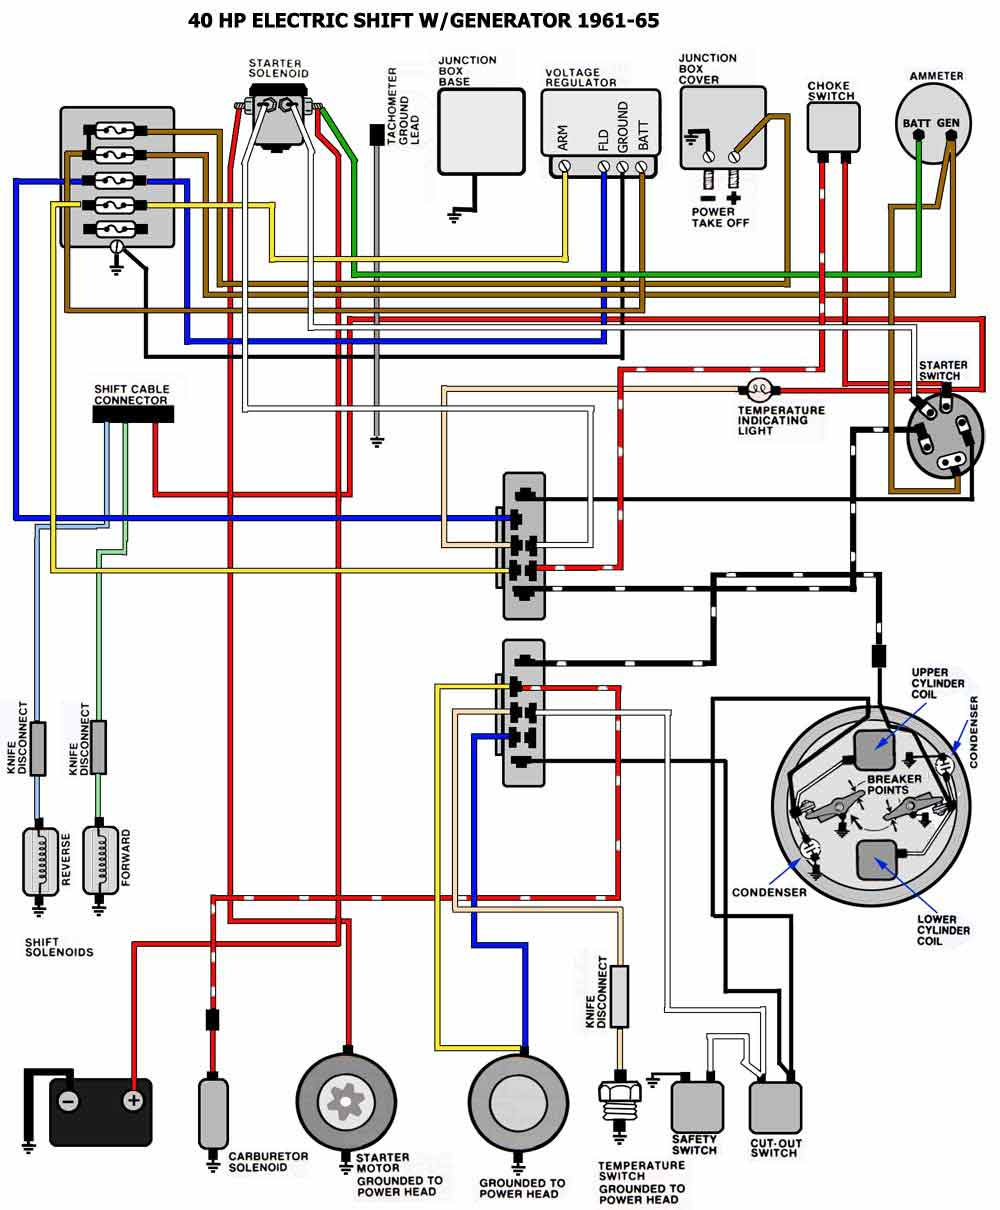 Diagram In Pictures Database Mercury 1968 60 Wiring Diagram Just Download Or Read Wiring Diagram Online Casalamm Edu Mx